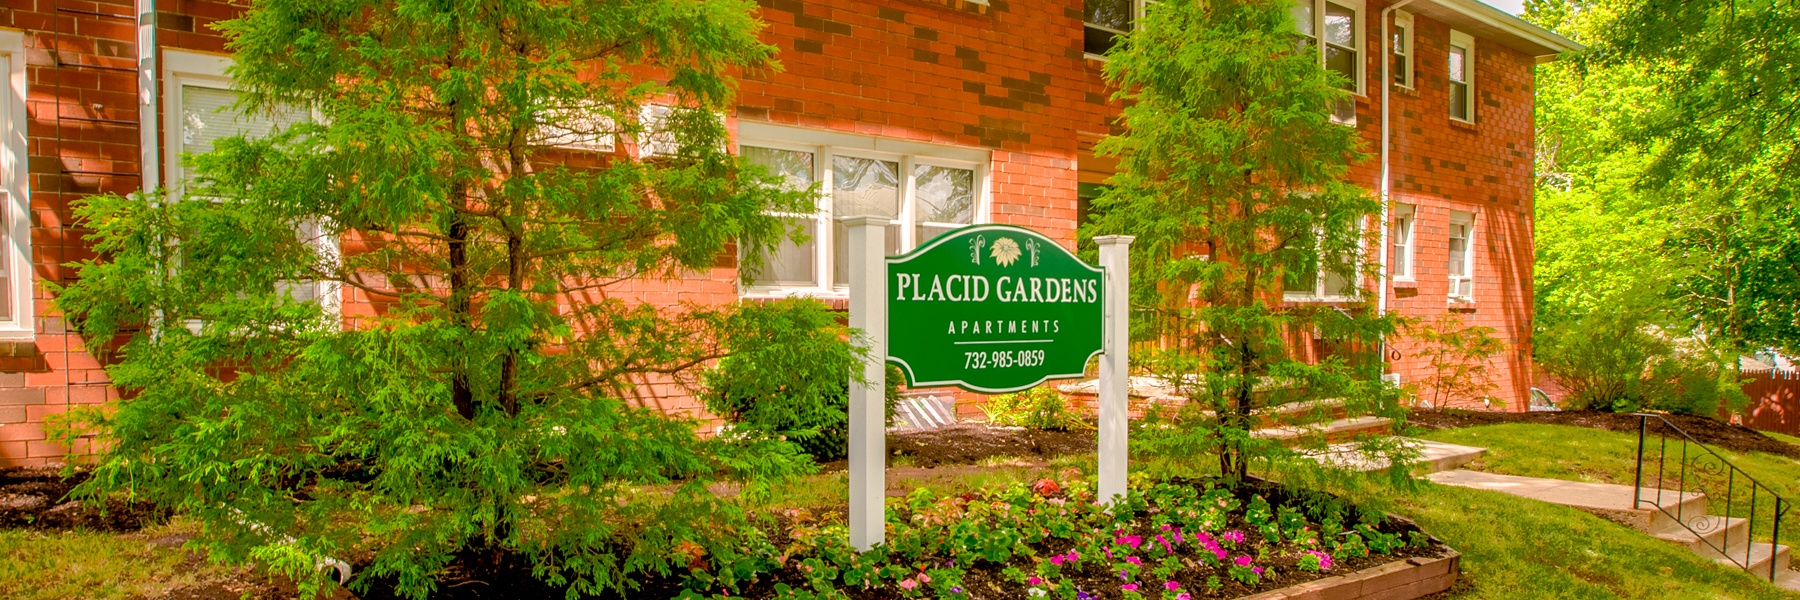 Placid Gardens Apartments For Rent in Highland Park, NJ Welcome